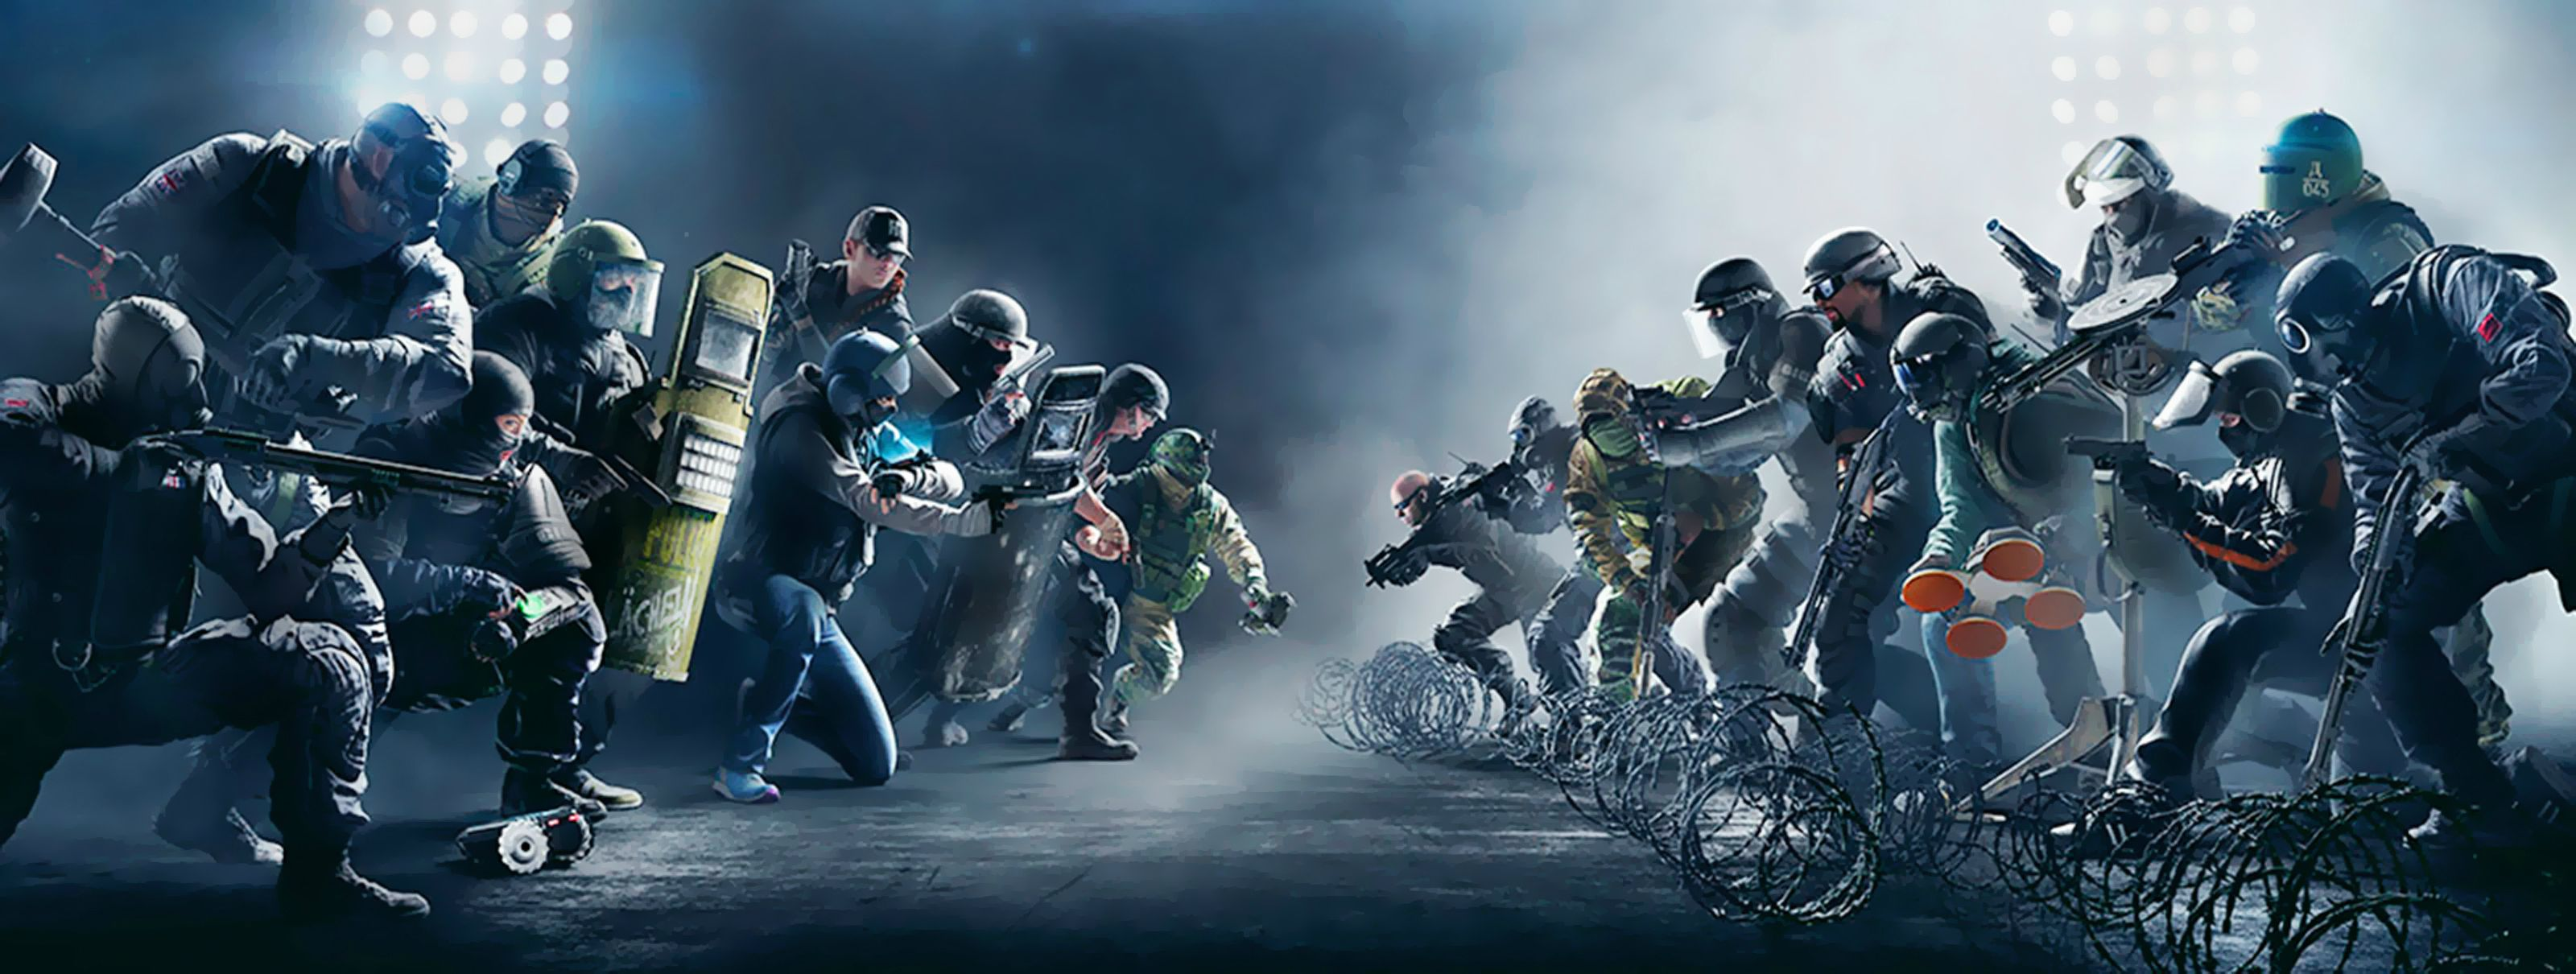 Rainbow Six Siege Wallpaper Posted By Zoey Johnson